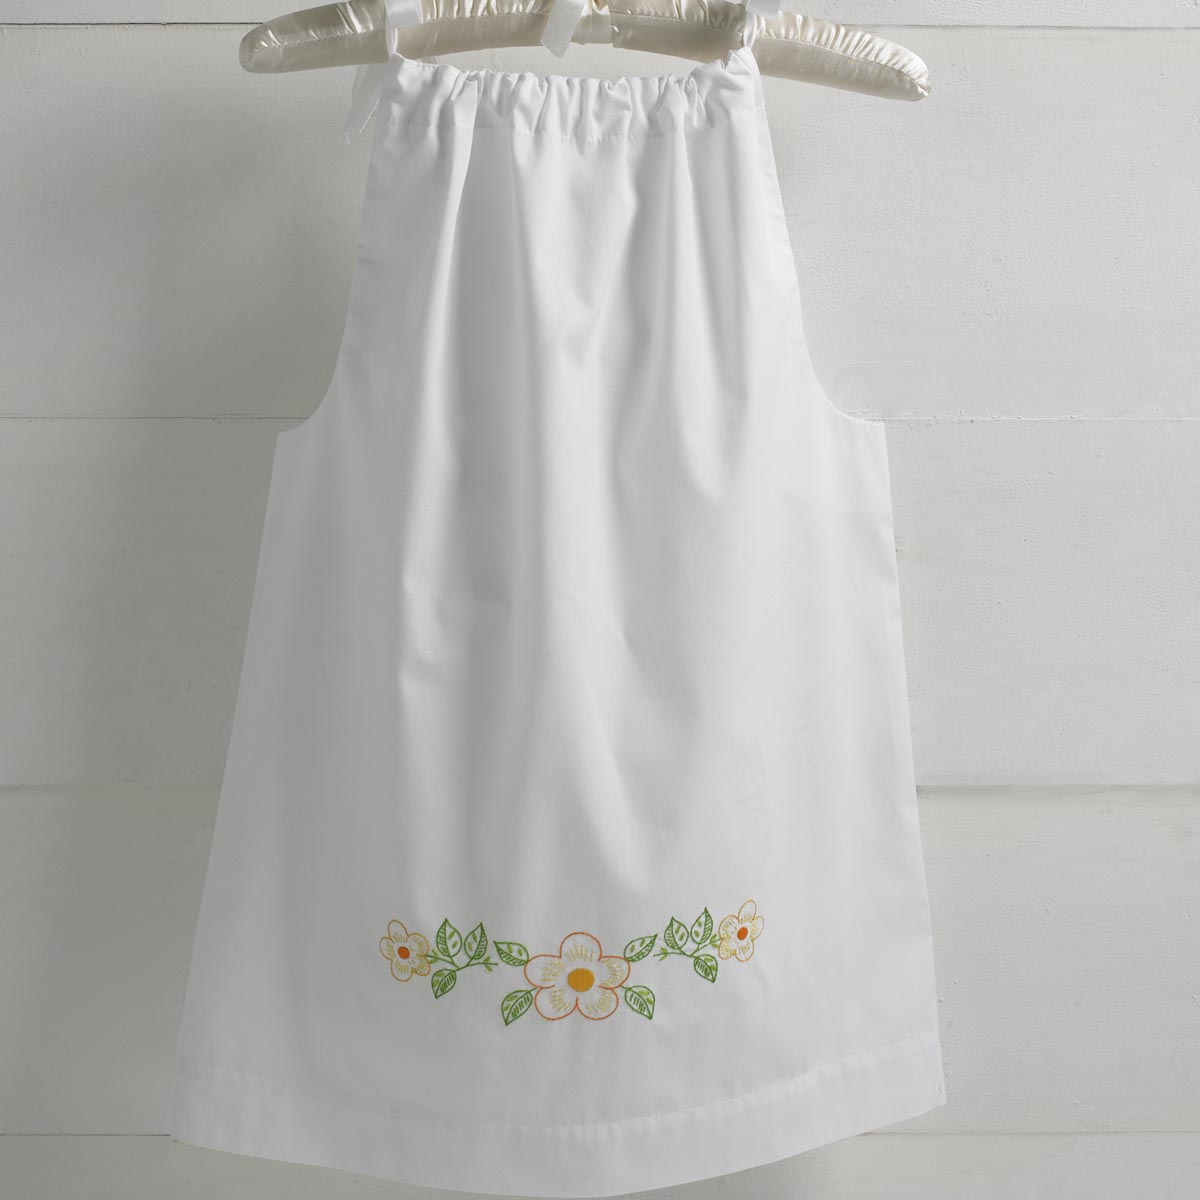 Bucilla ® Stamped Cross Stitch & Embroidery - Pillowcase Dress - Happy Flowers Floral